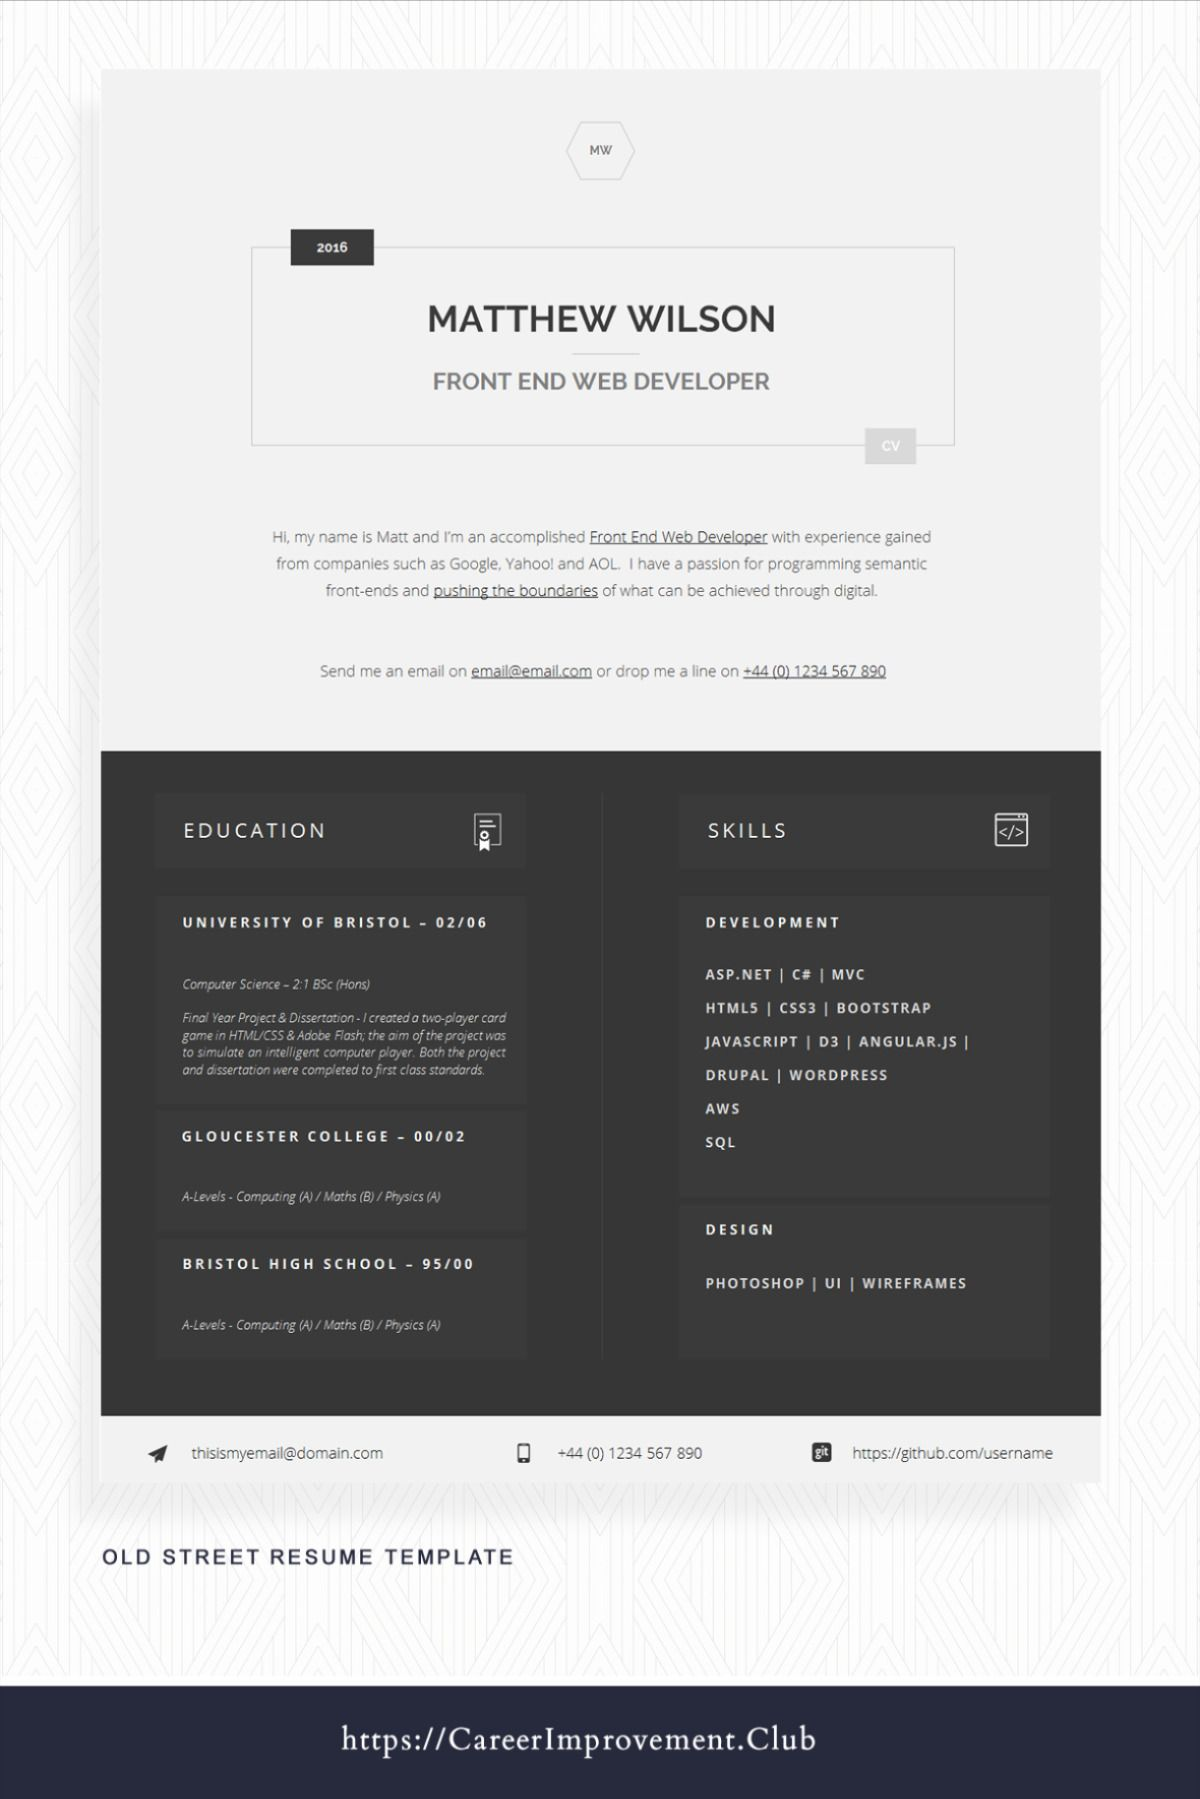 Printable Word CV Template Editable Word CV CV